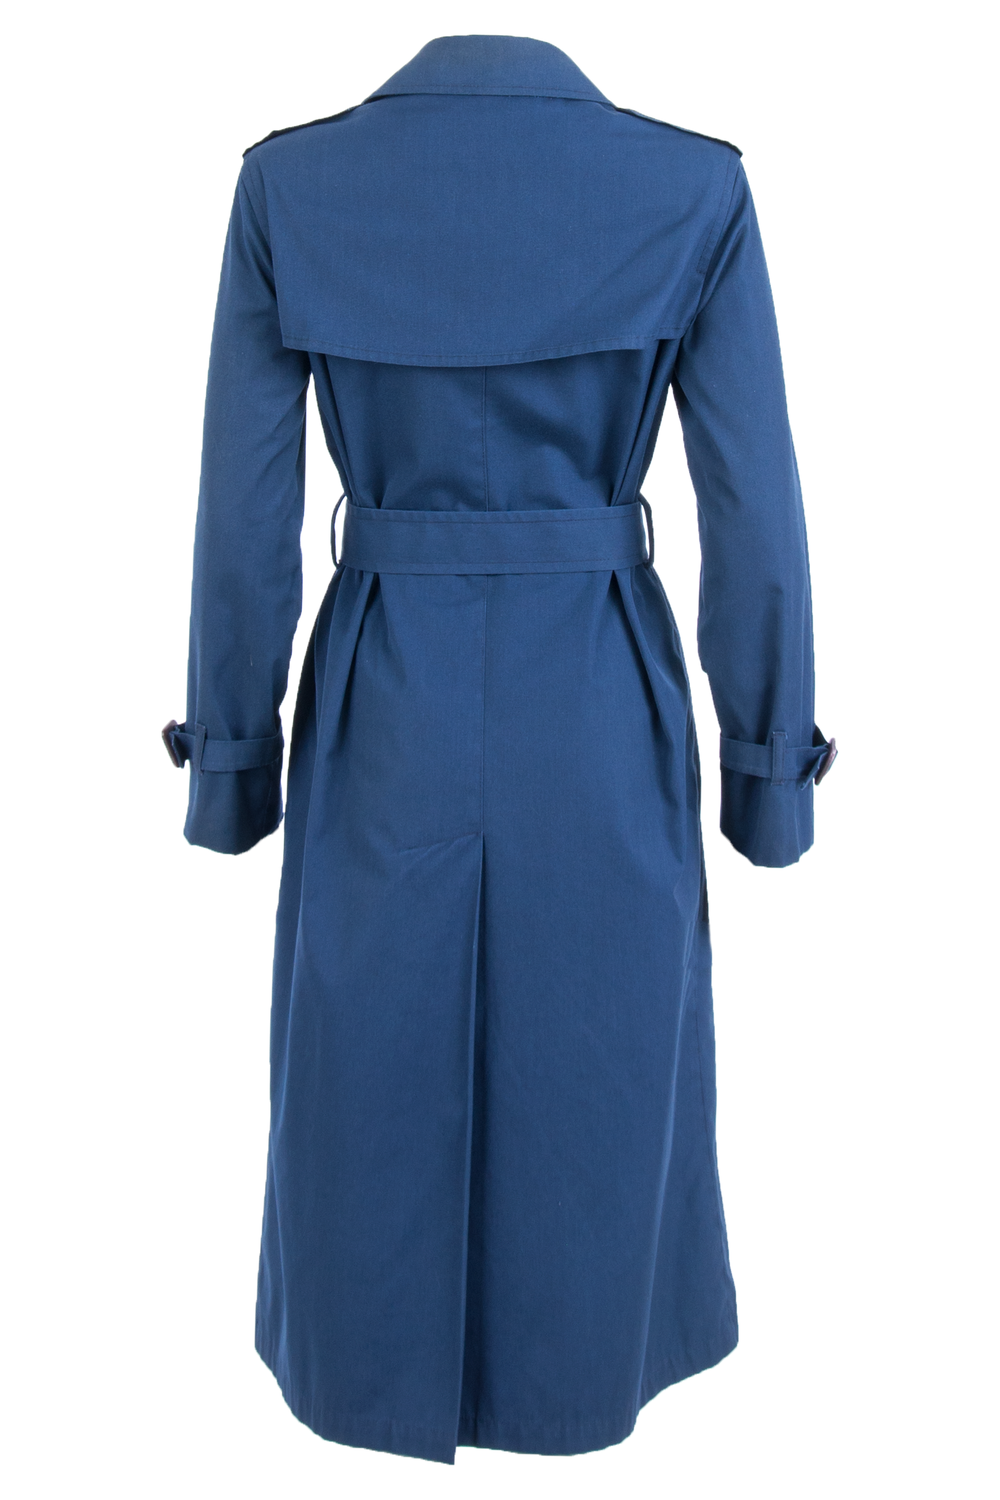 blue vintage trench coat back view